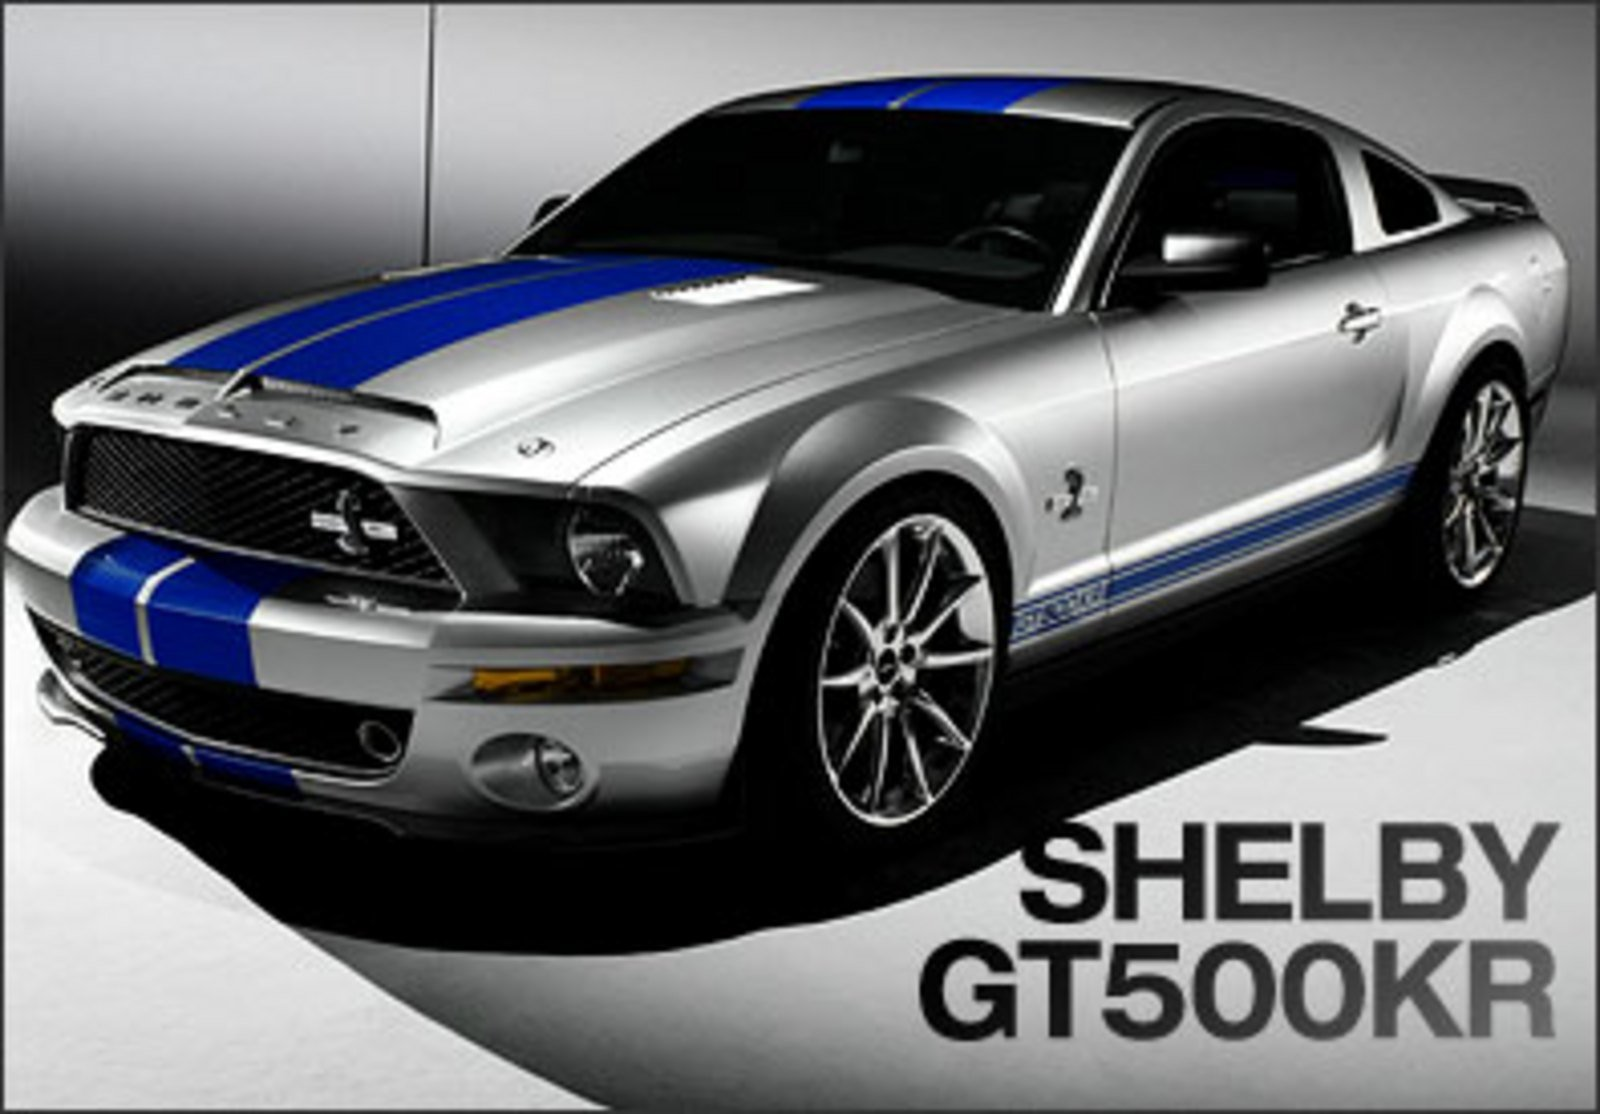 2008 ford mustang shelby gt500kr review top speed. Black Bedroom Furniture Sets. Home Design Ideas